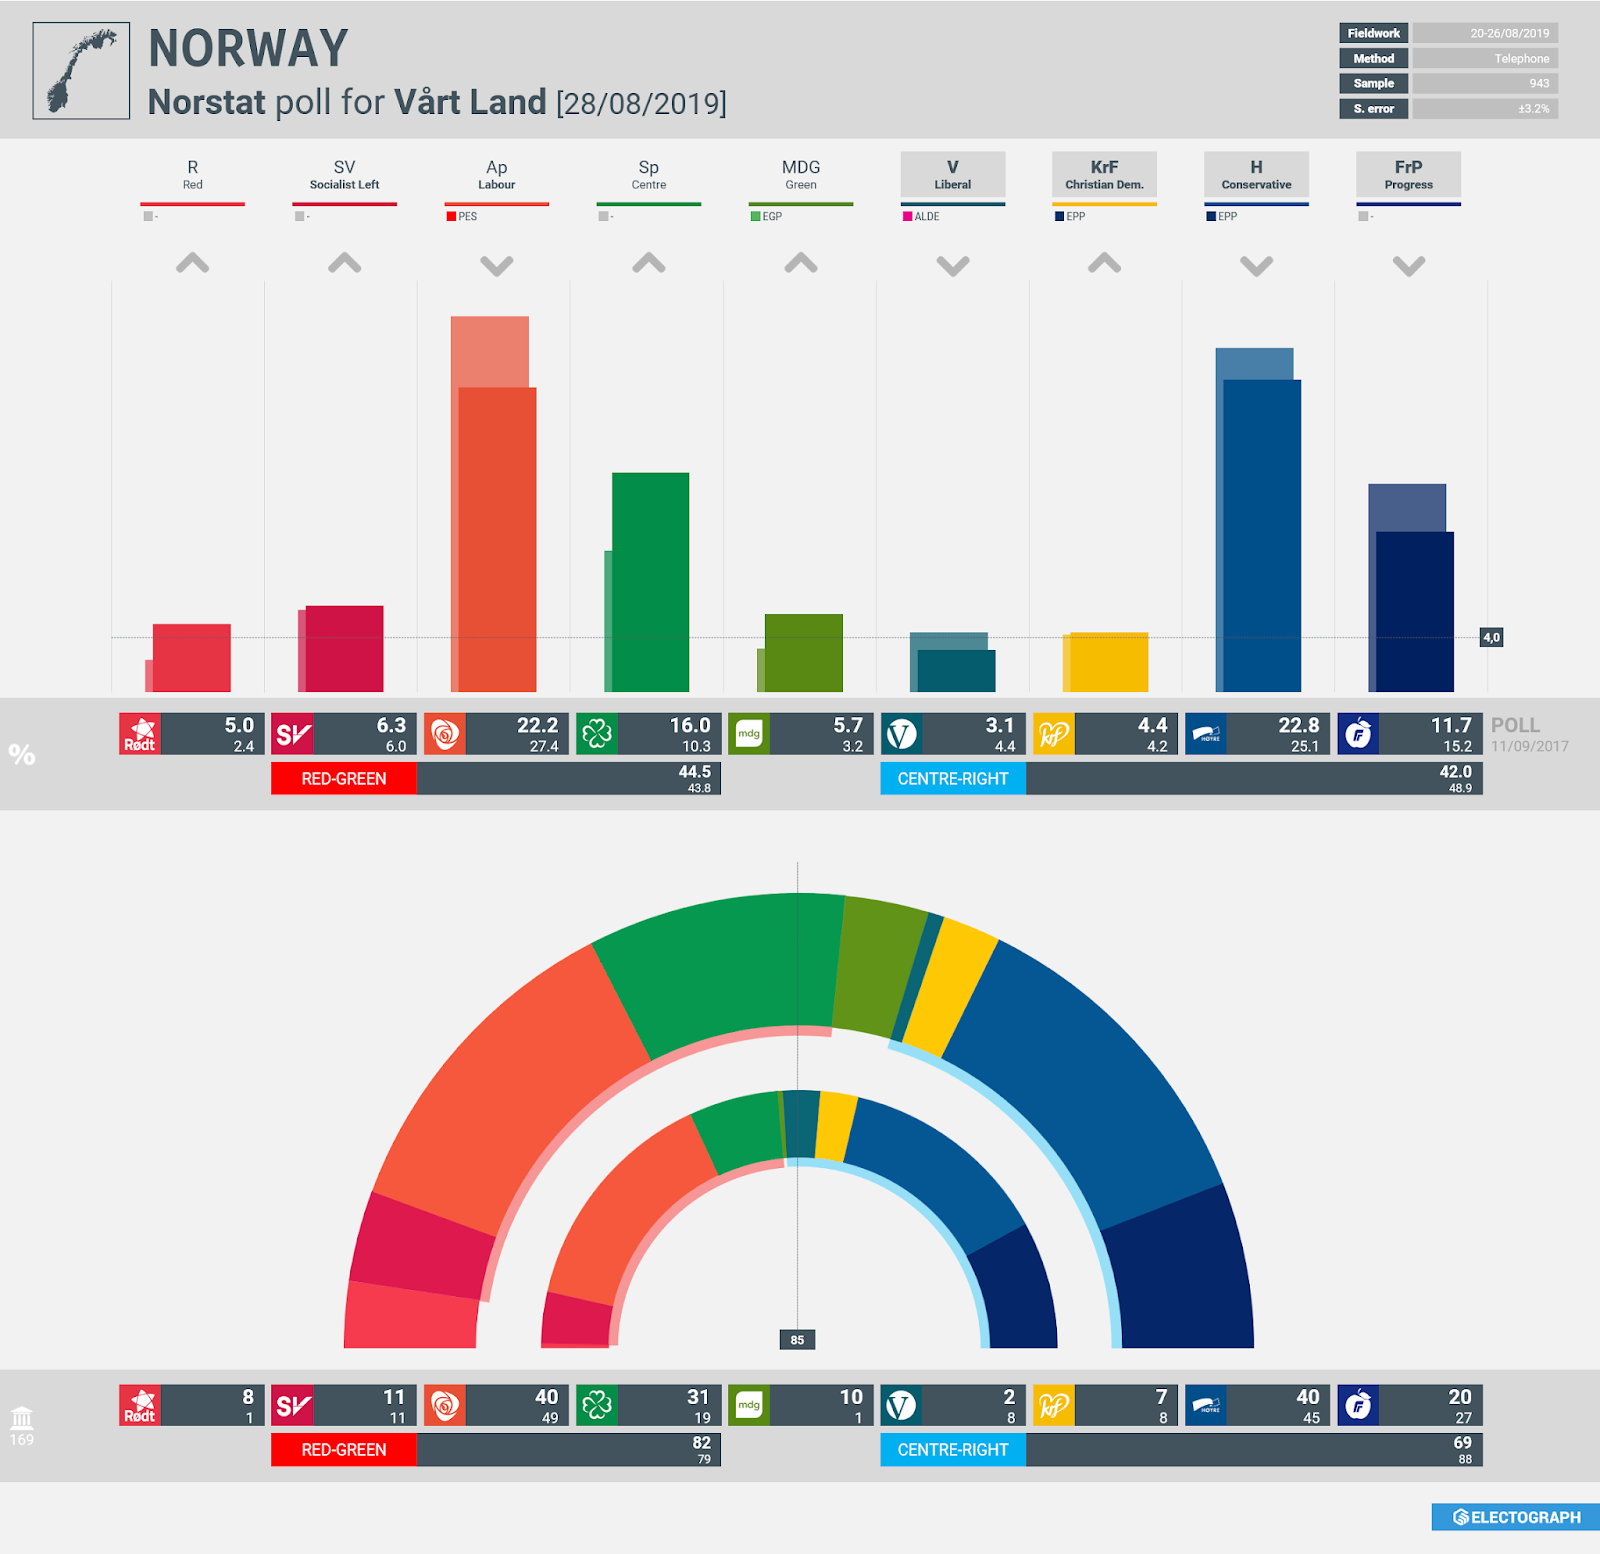 NORWAY: Norstat poll chart for Vårt Land, 28 August 2019